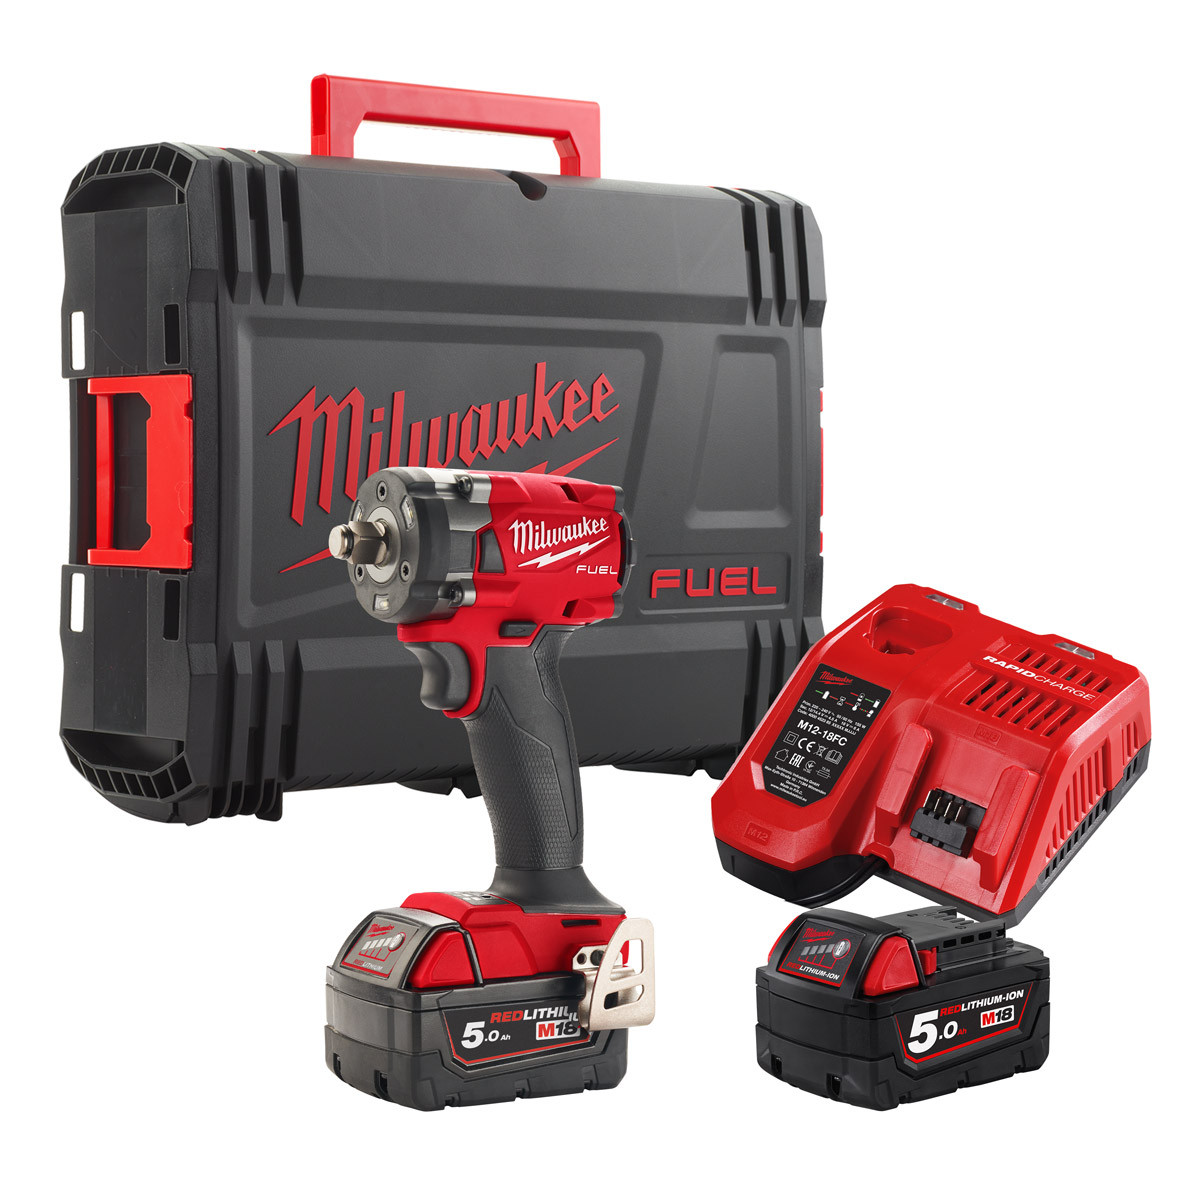 Milwaukee M18FIW2F12 18V Fuel Brushless 2nd Gen 1/2in Impact Wrench - 5.0ah Pack